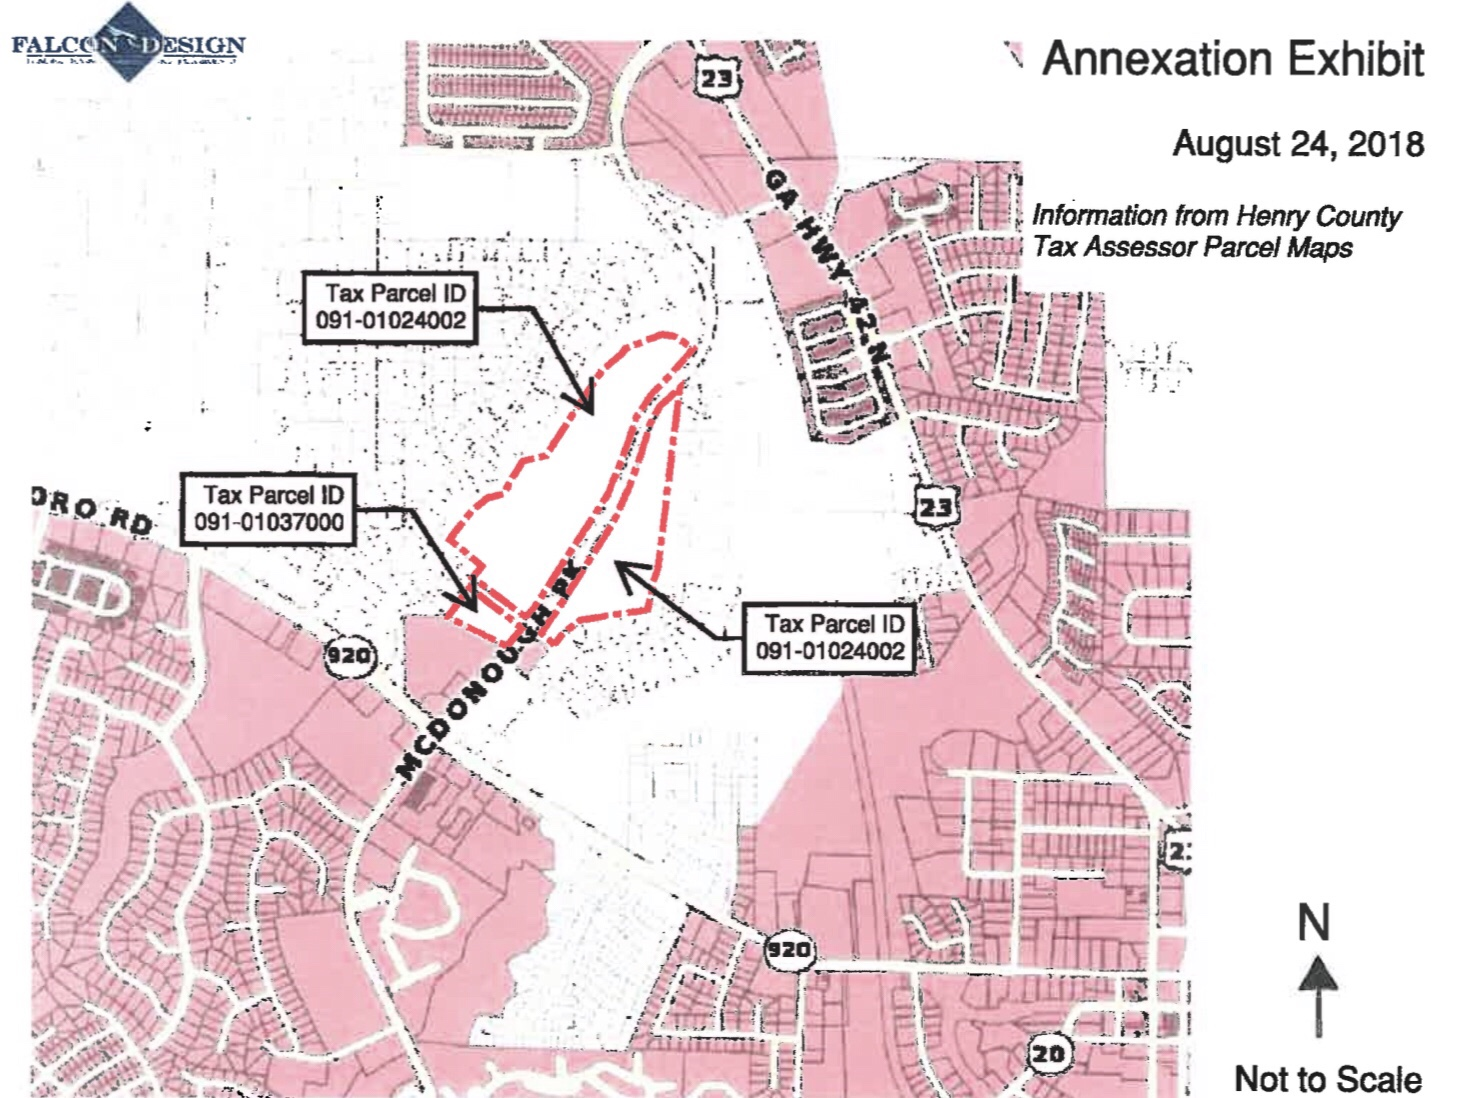 Location map for McDonough Parkway annexation request (Falcon Design photo)